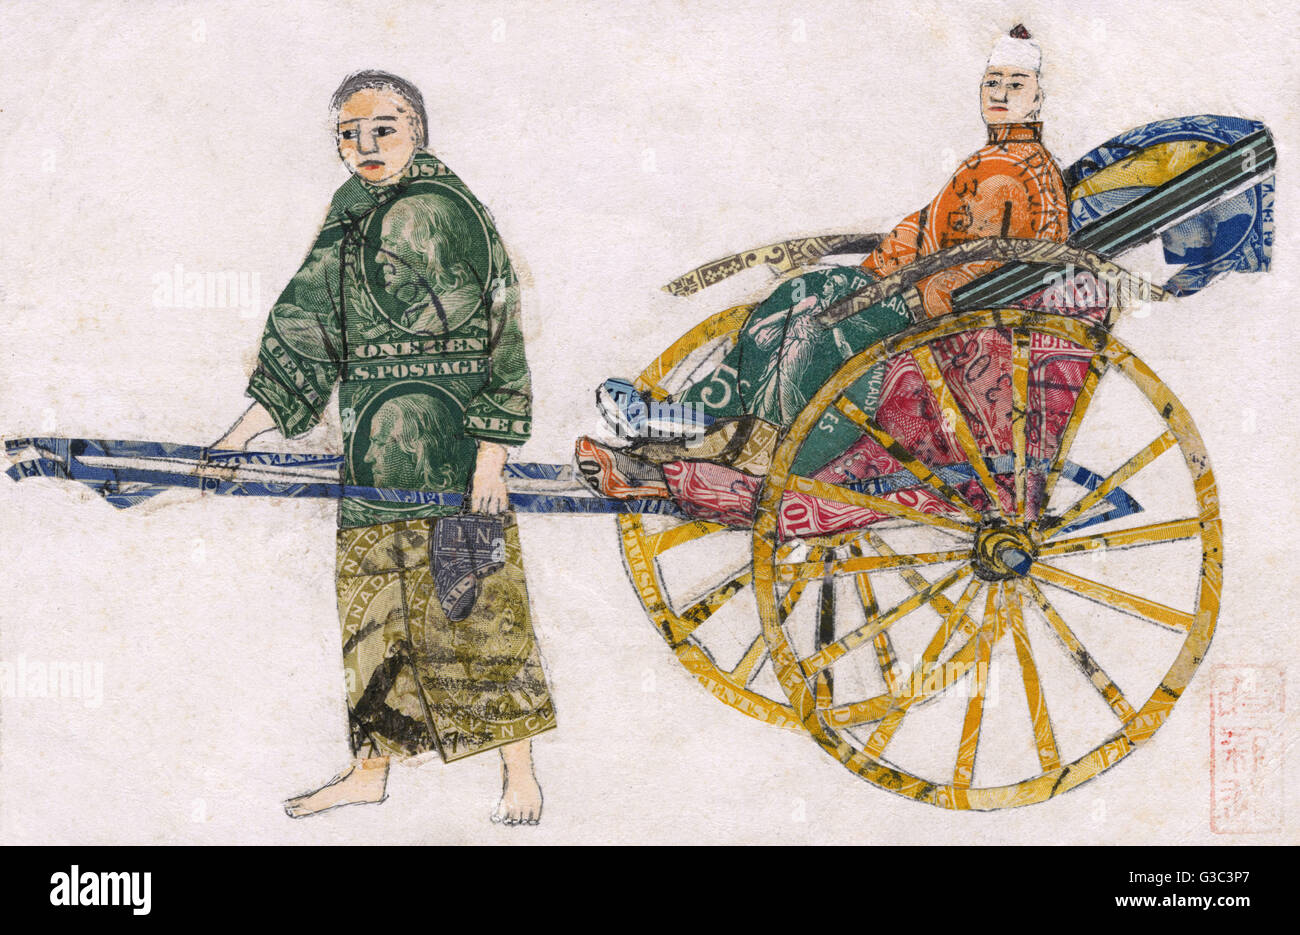 Rickshaw scene made from used postage stamps, China.      Date: circa 1905 - Stock Image